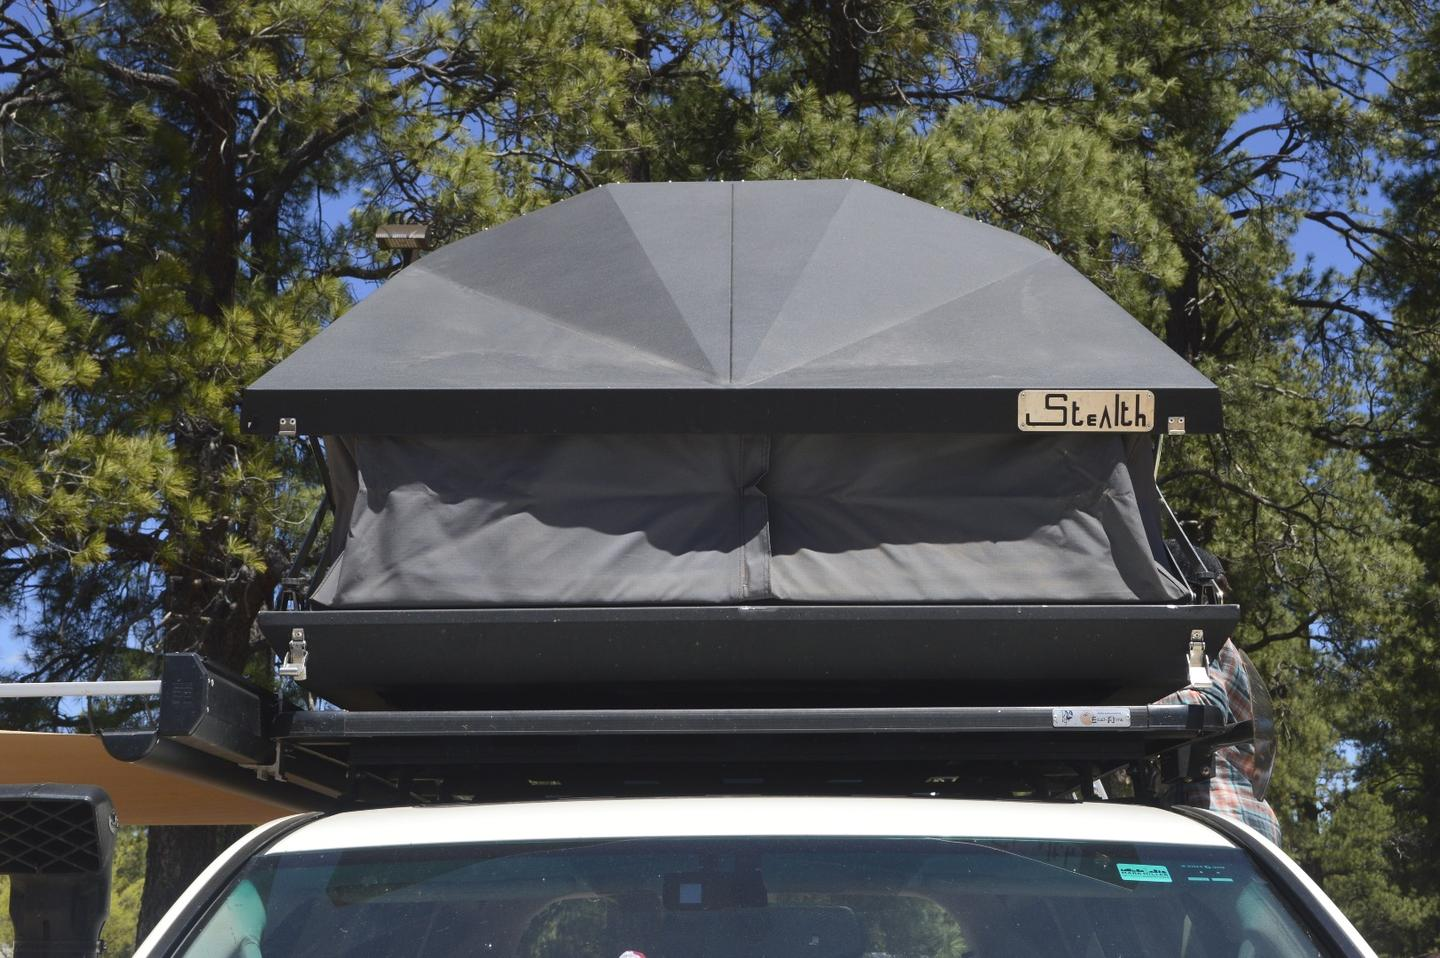 The new Stealth tent from Eezi-Awn features a distinctive aluminum shell